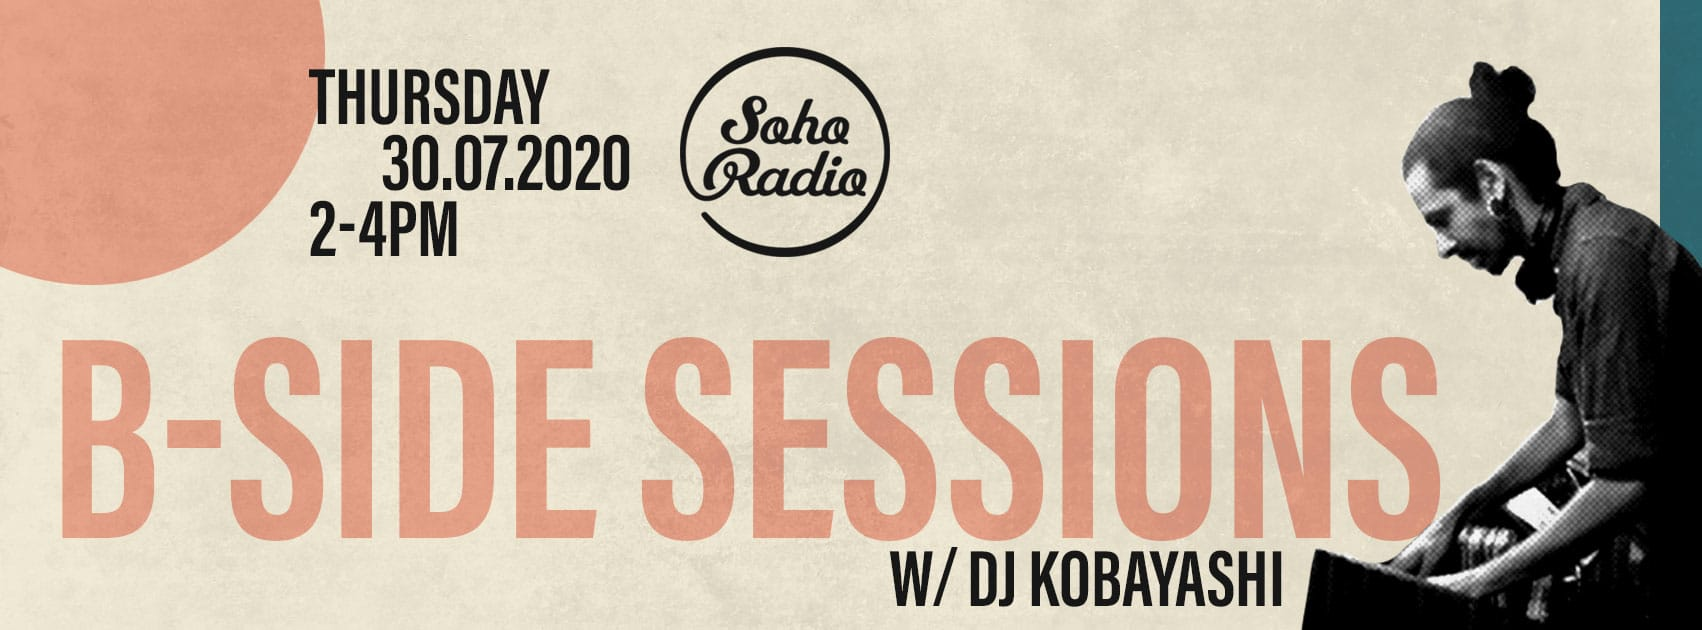 Kingdome of Kaffa on B-side Sessions | Soho Radio